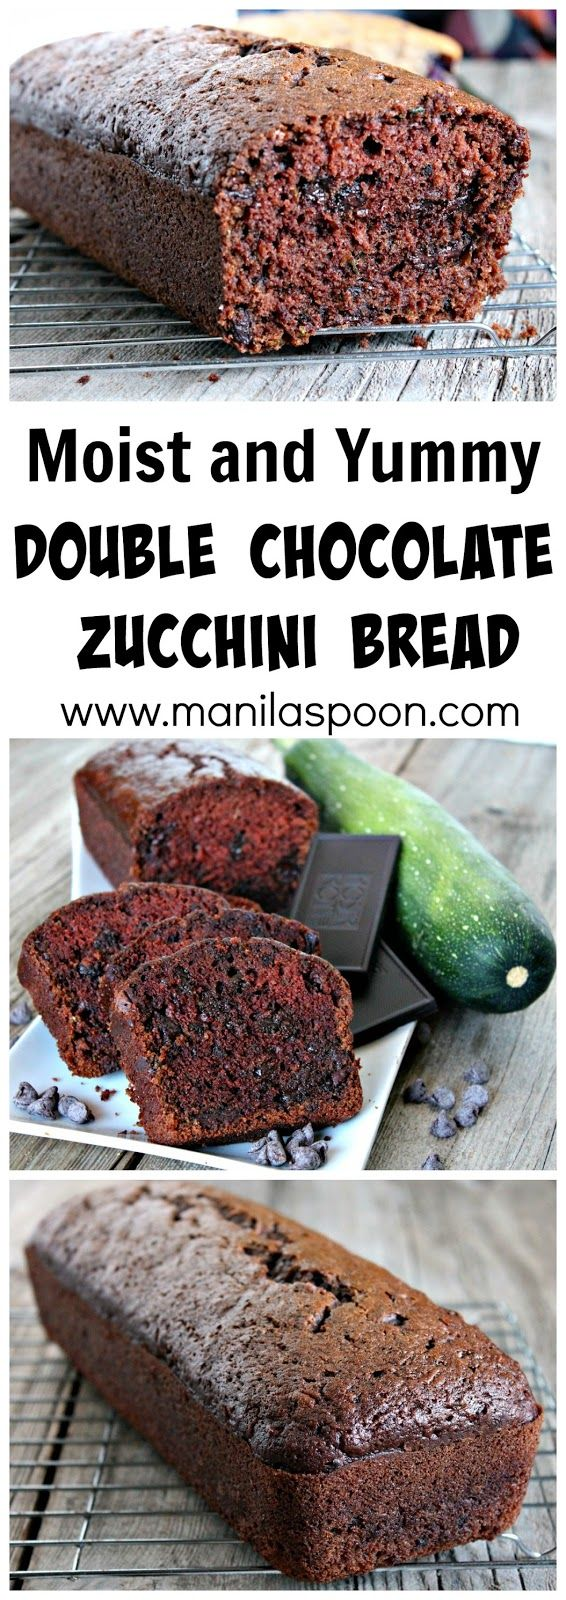 Super-moist, tender and delicious is this Double Chocolate Zucchini Bread. My kids really love this and they don't care that there are veggies in it. It's that good! ! #double #chocolate #zucchini #bread